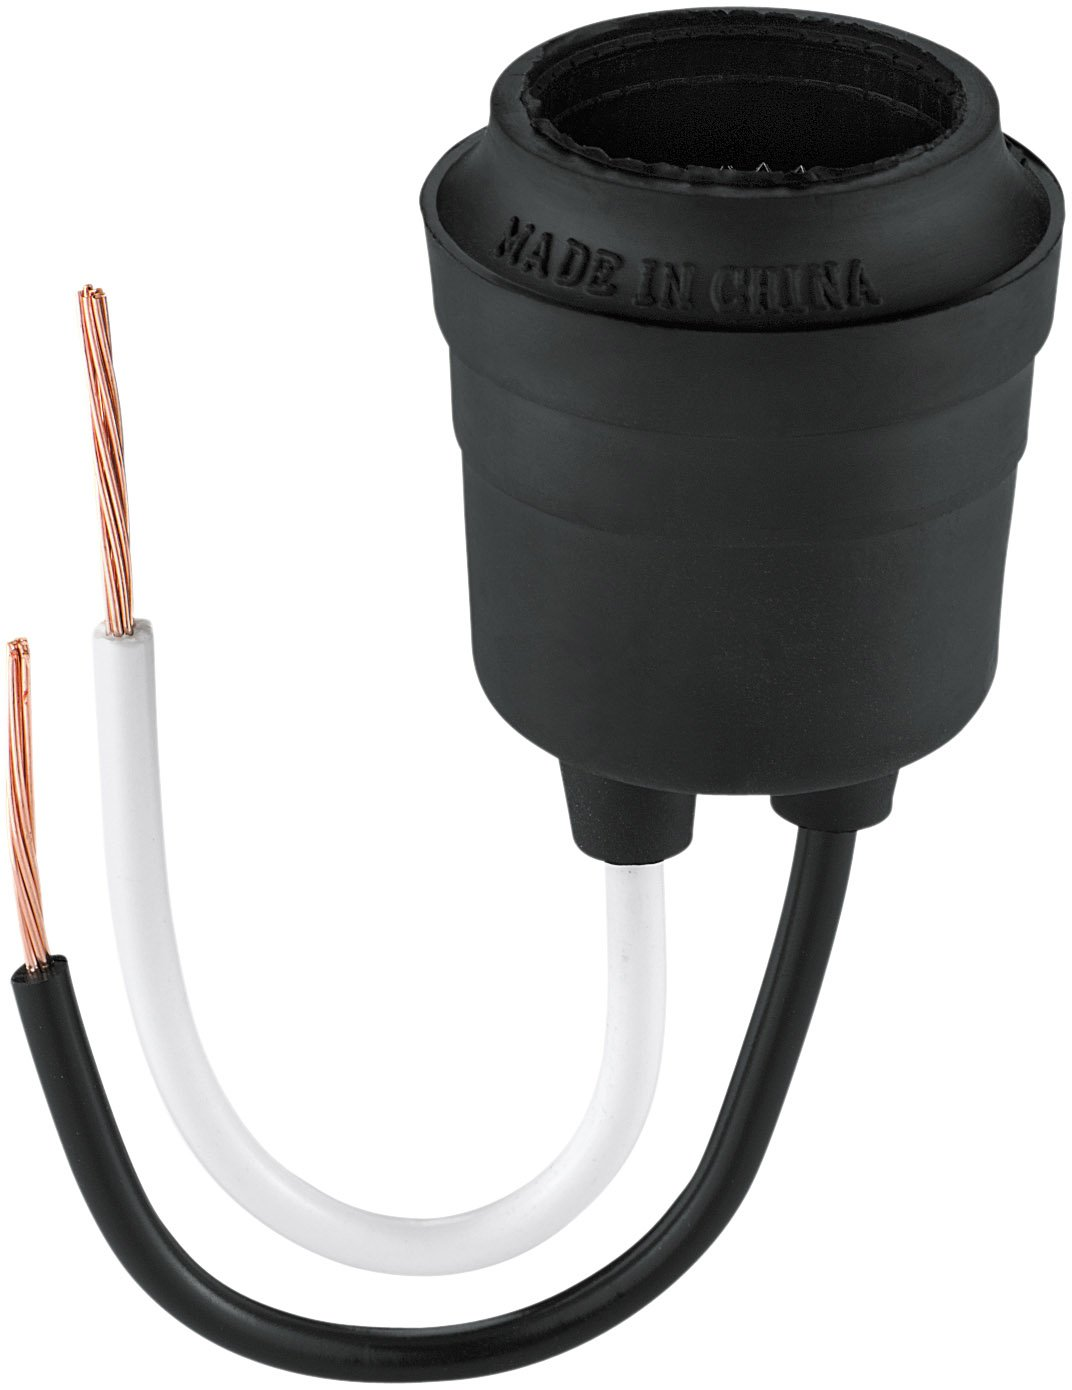 Captivating Eaton 145 Rubber Pigtail Lamp Holder With Box, Medium Base   Light Sockets    Amazon.com